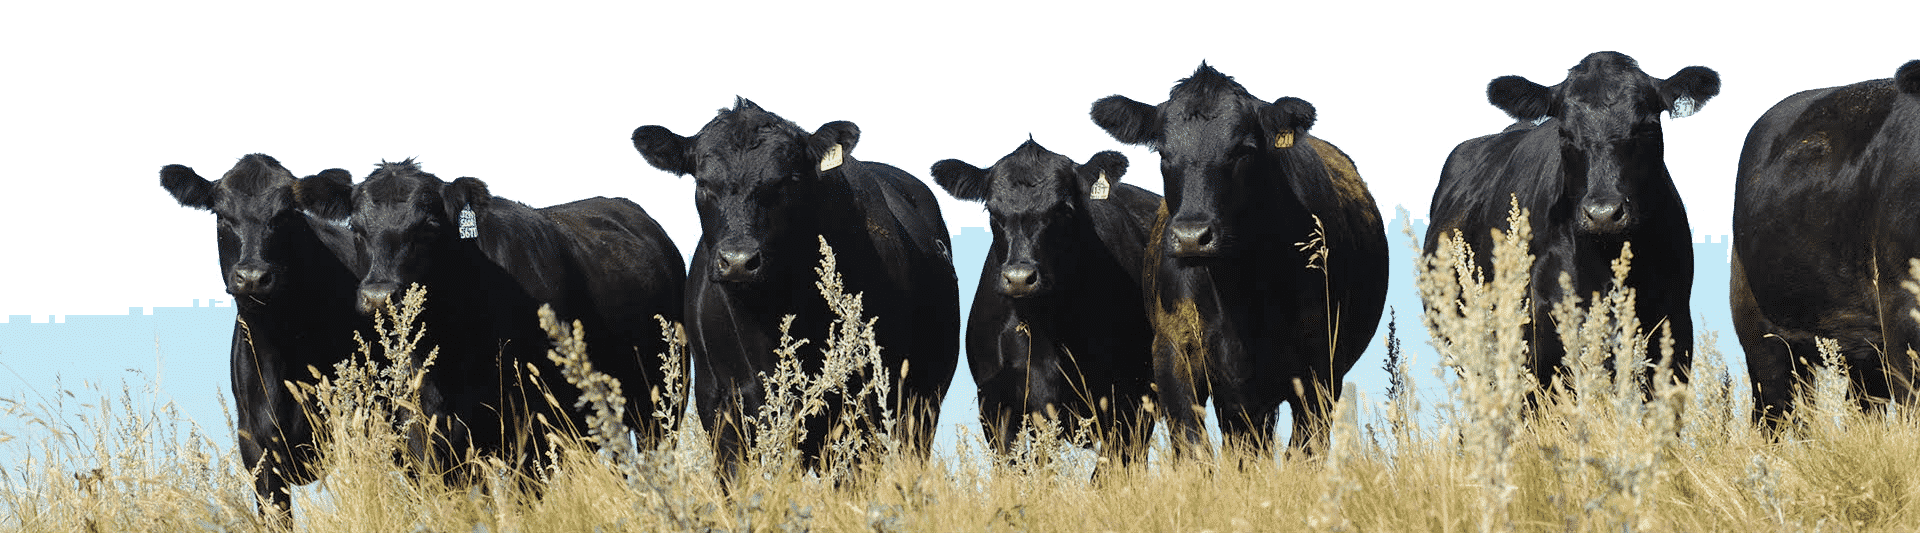 breed-innovation-cows